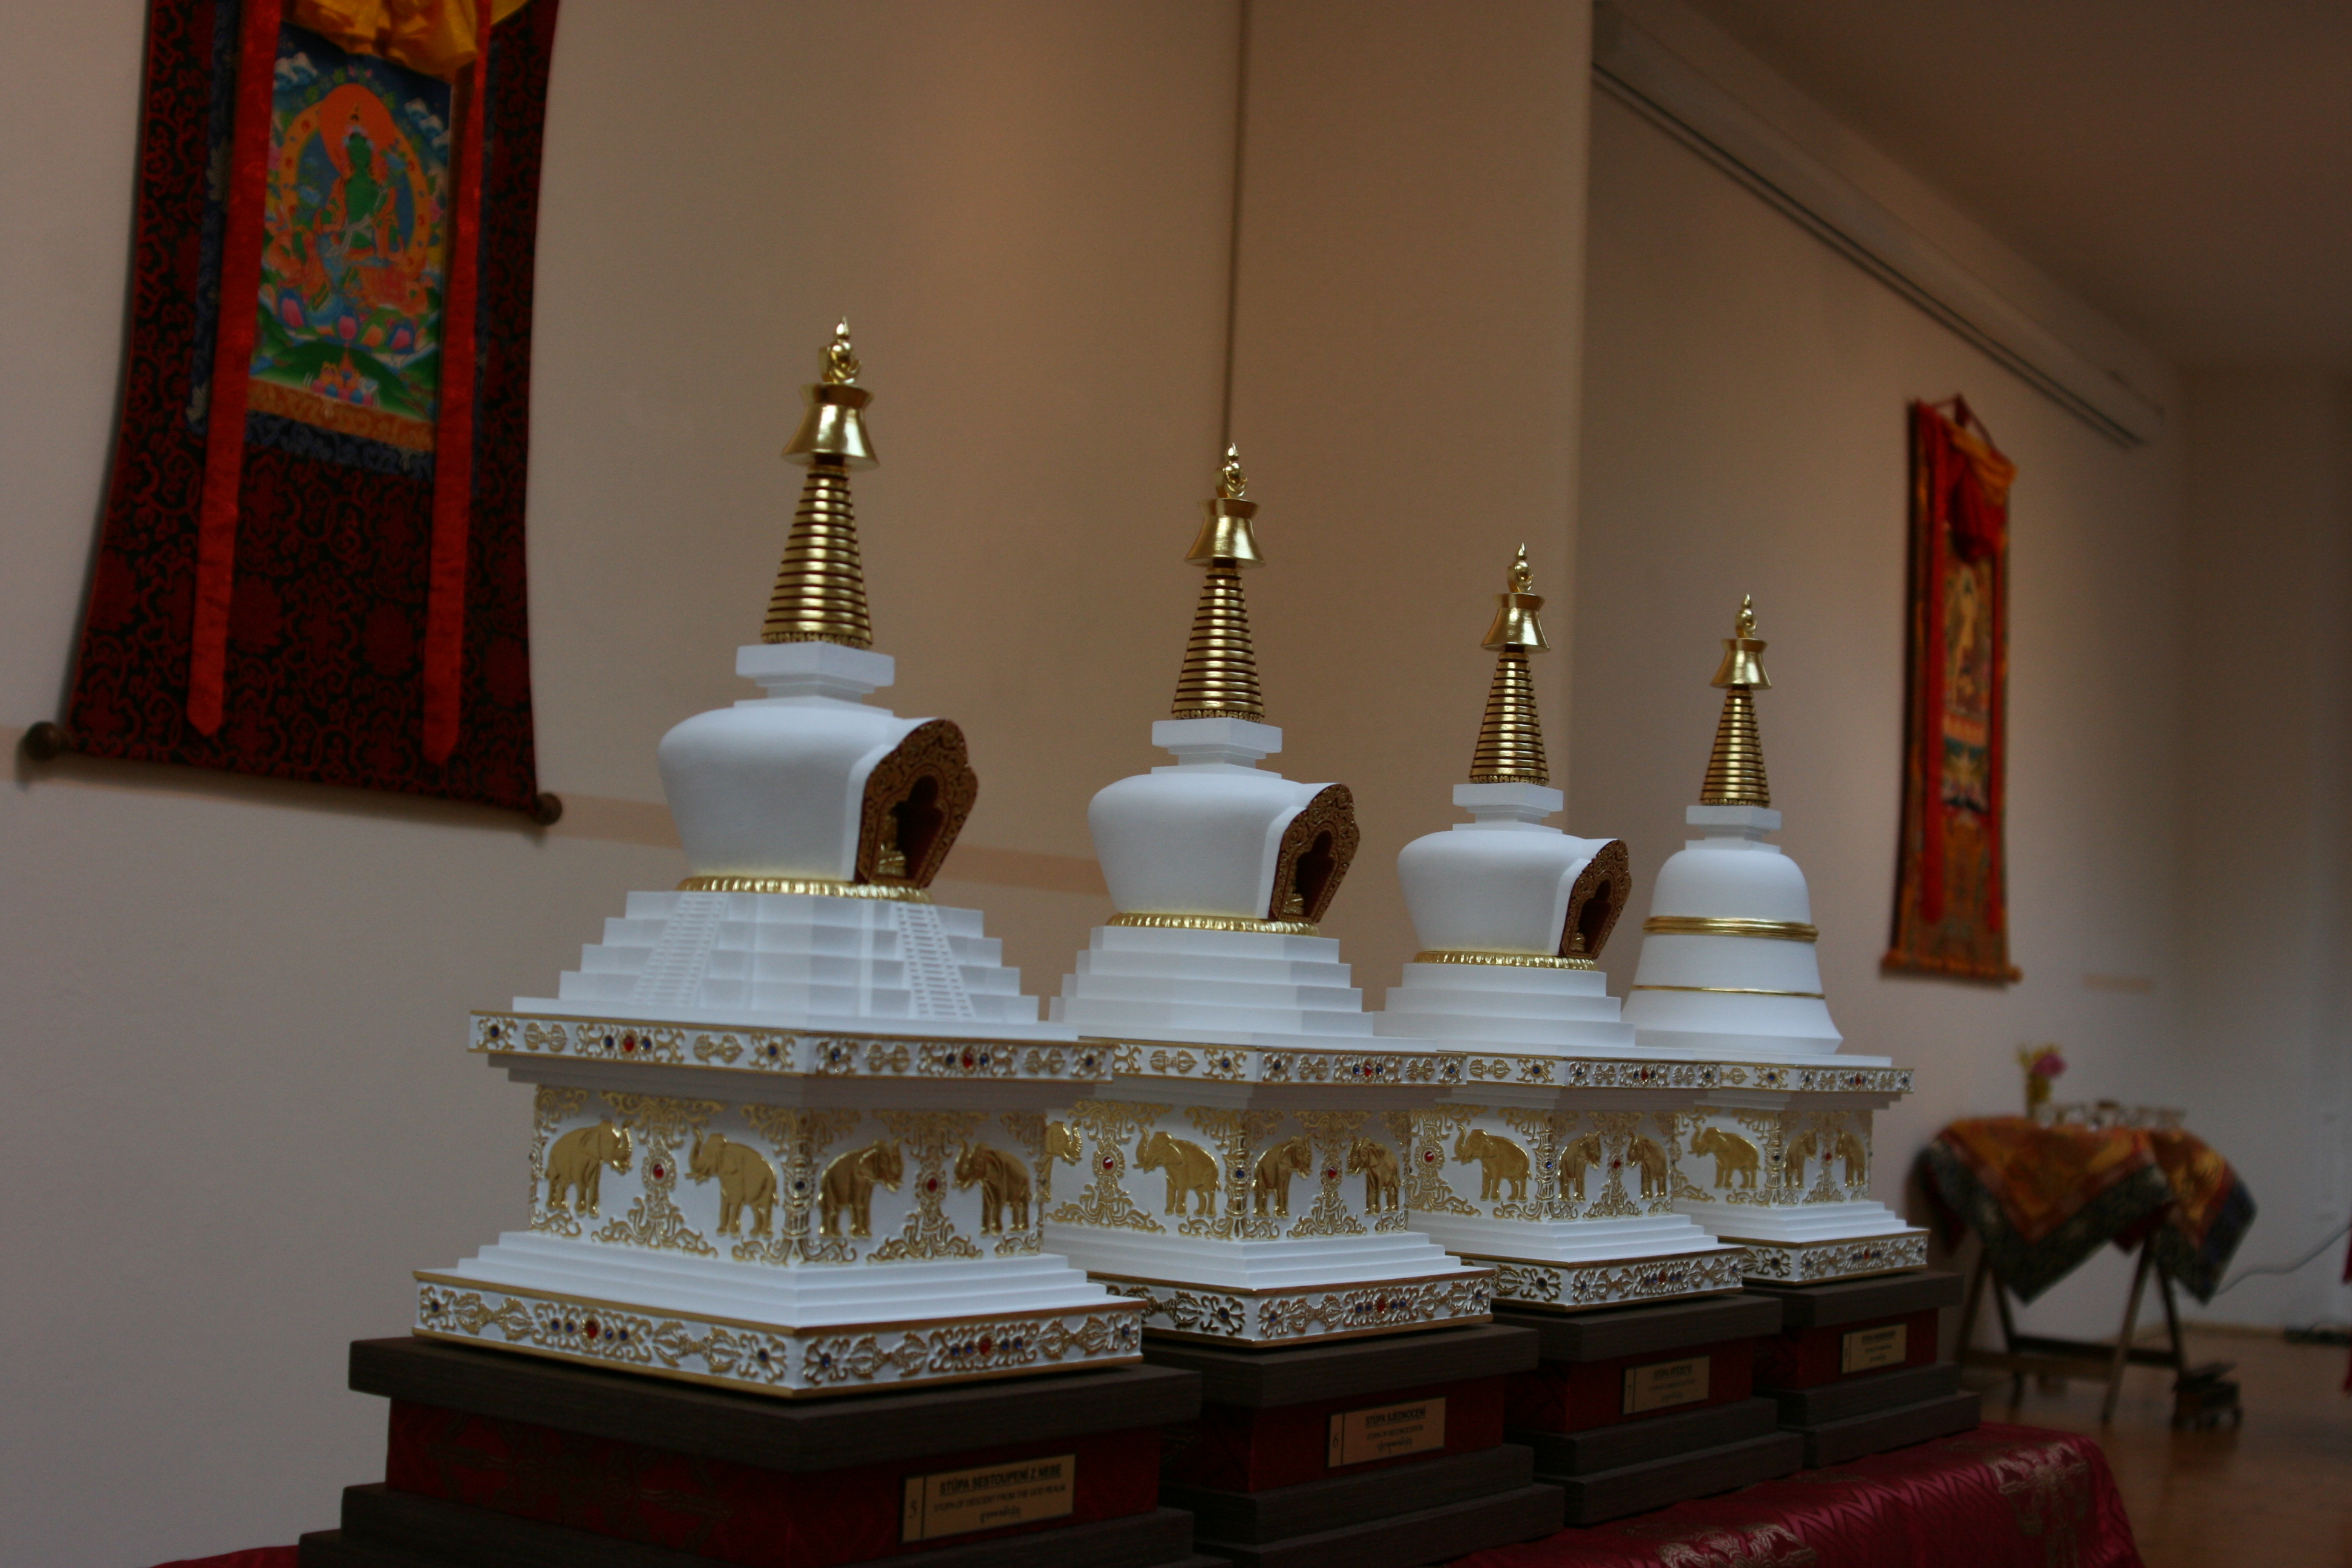 vystava tibet open house 9